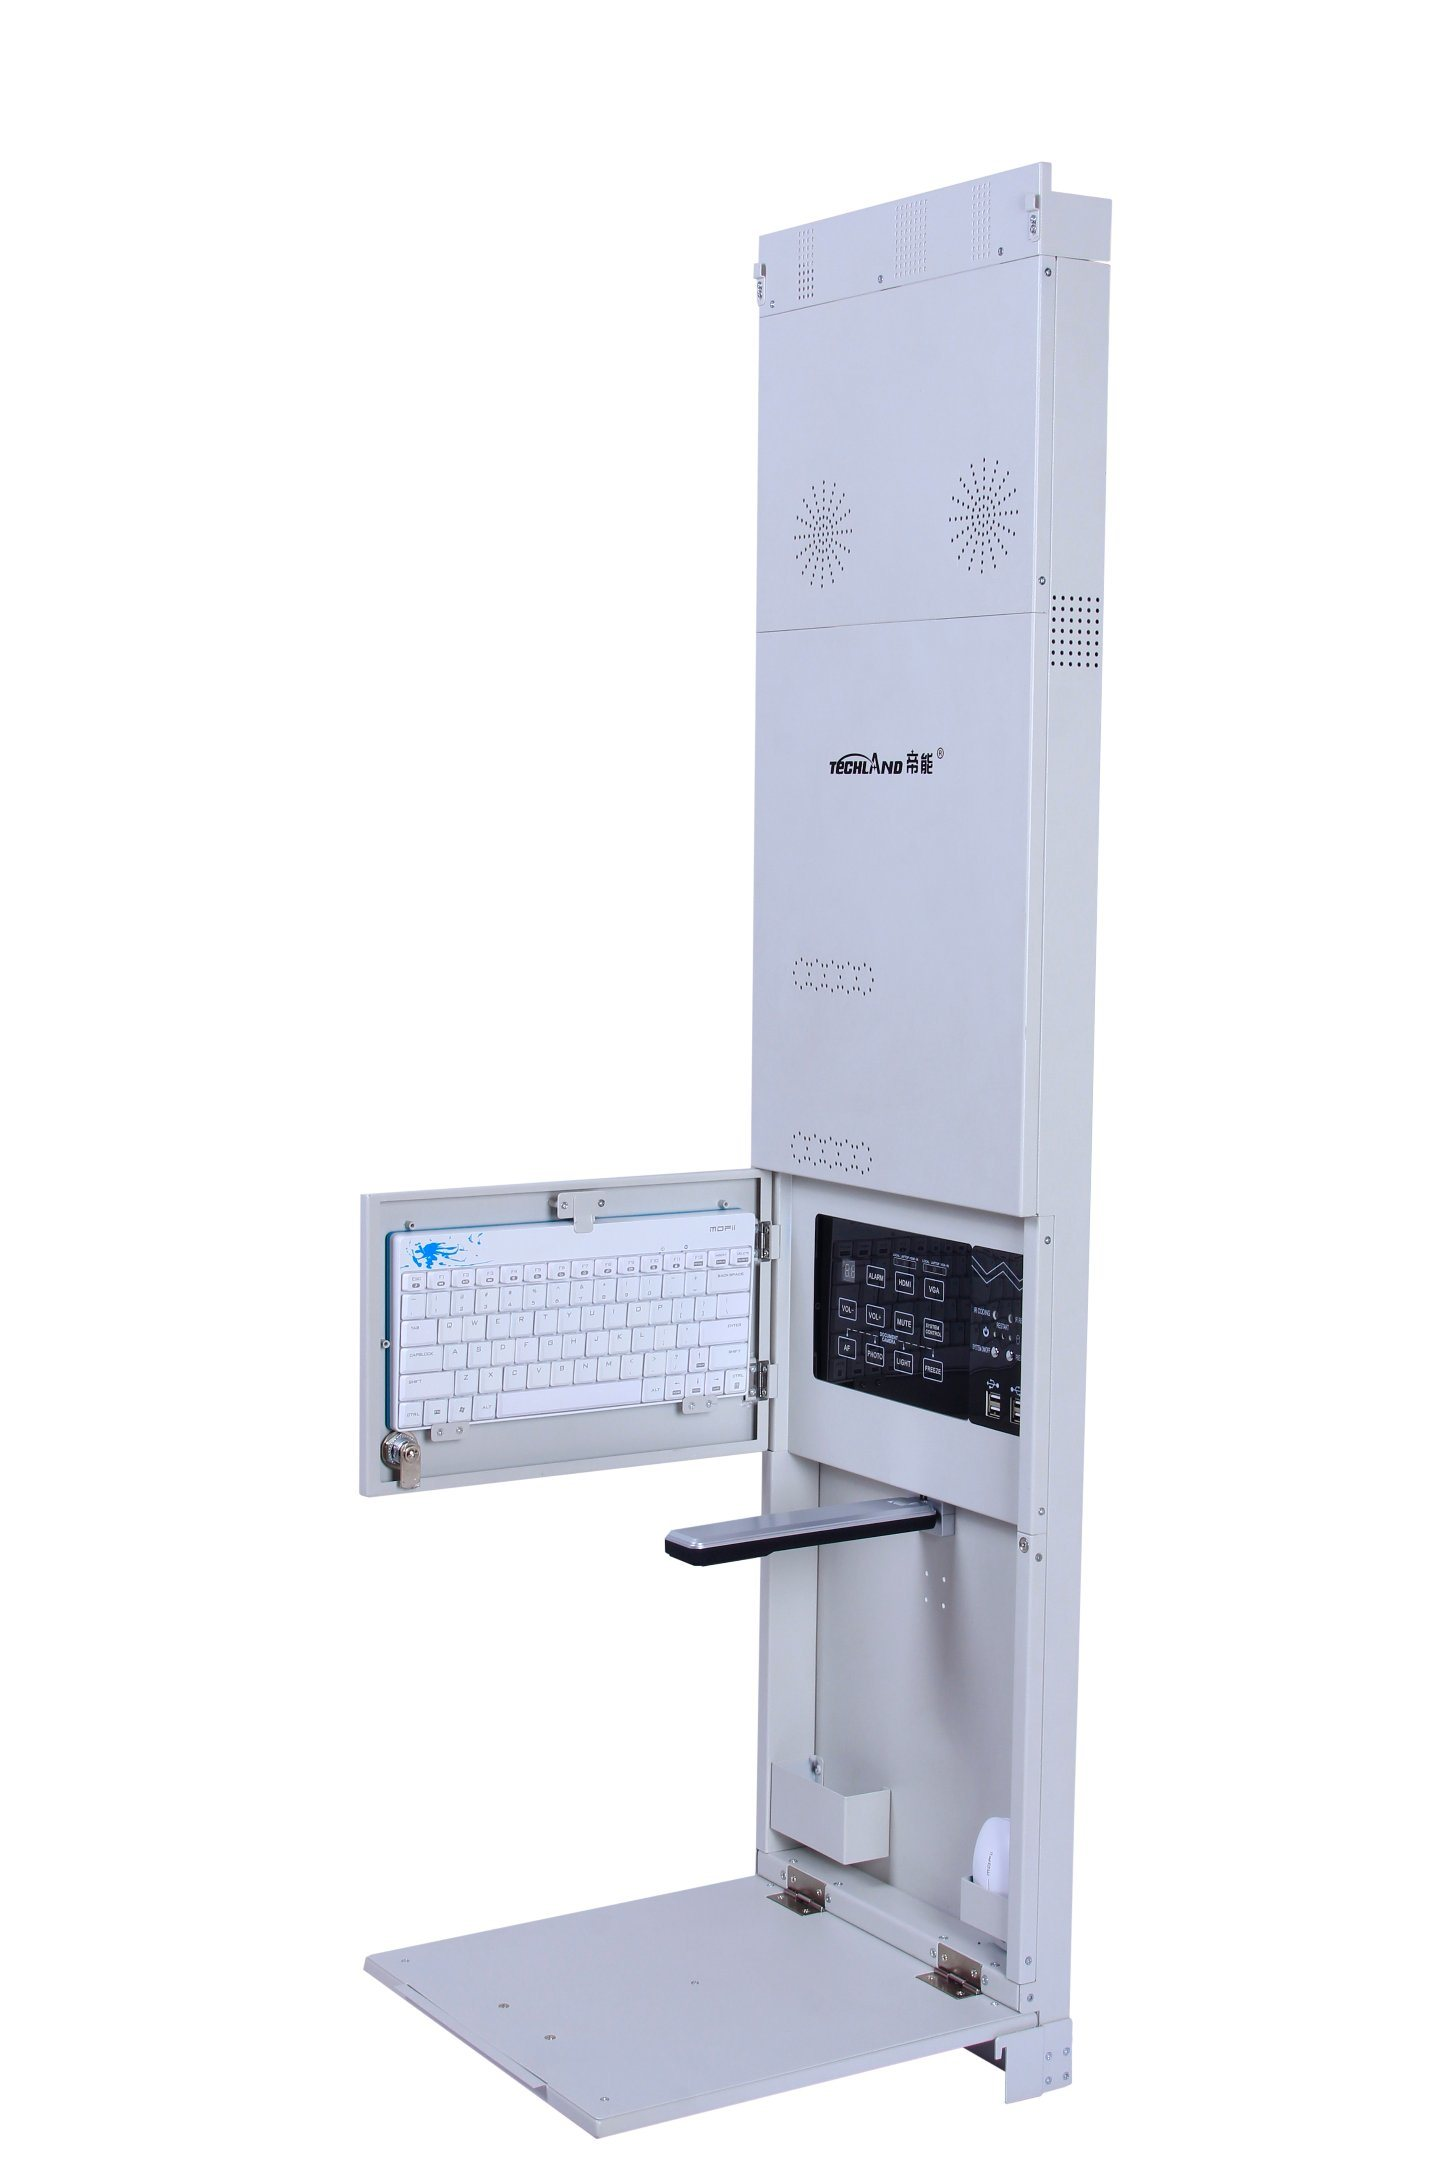 Wall-Mounted Multi-Media All-in-One PC for Interactive Whiteboard